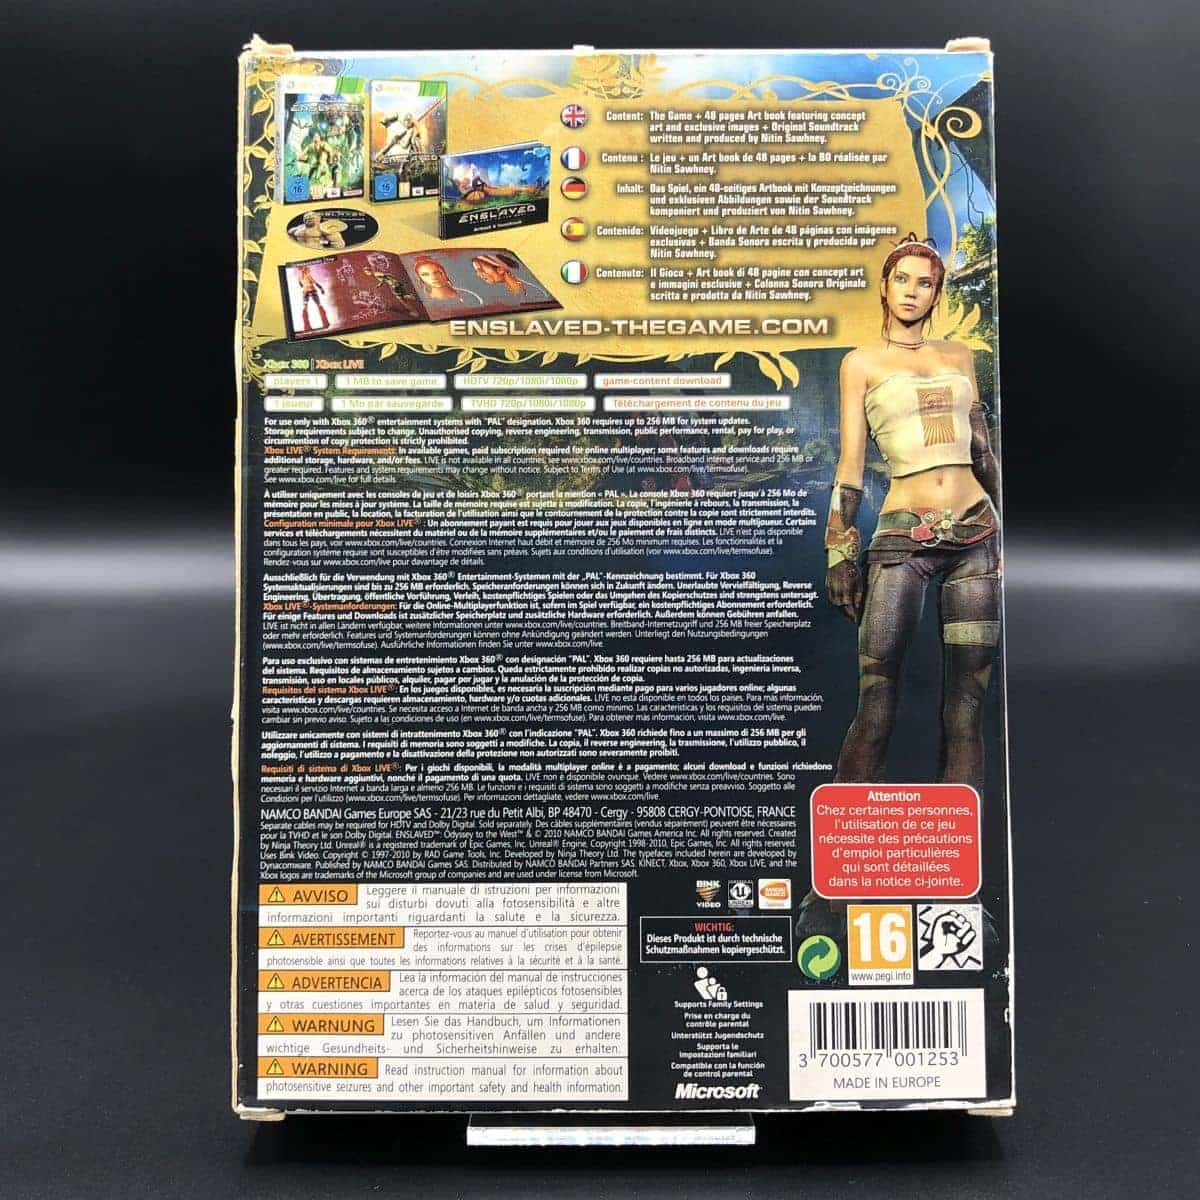 Enslaved: Odyssey to the West (Collector's Edition) (Komplett) (Sehr gut) XBOX 360